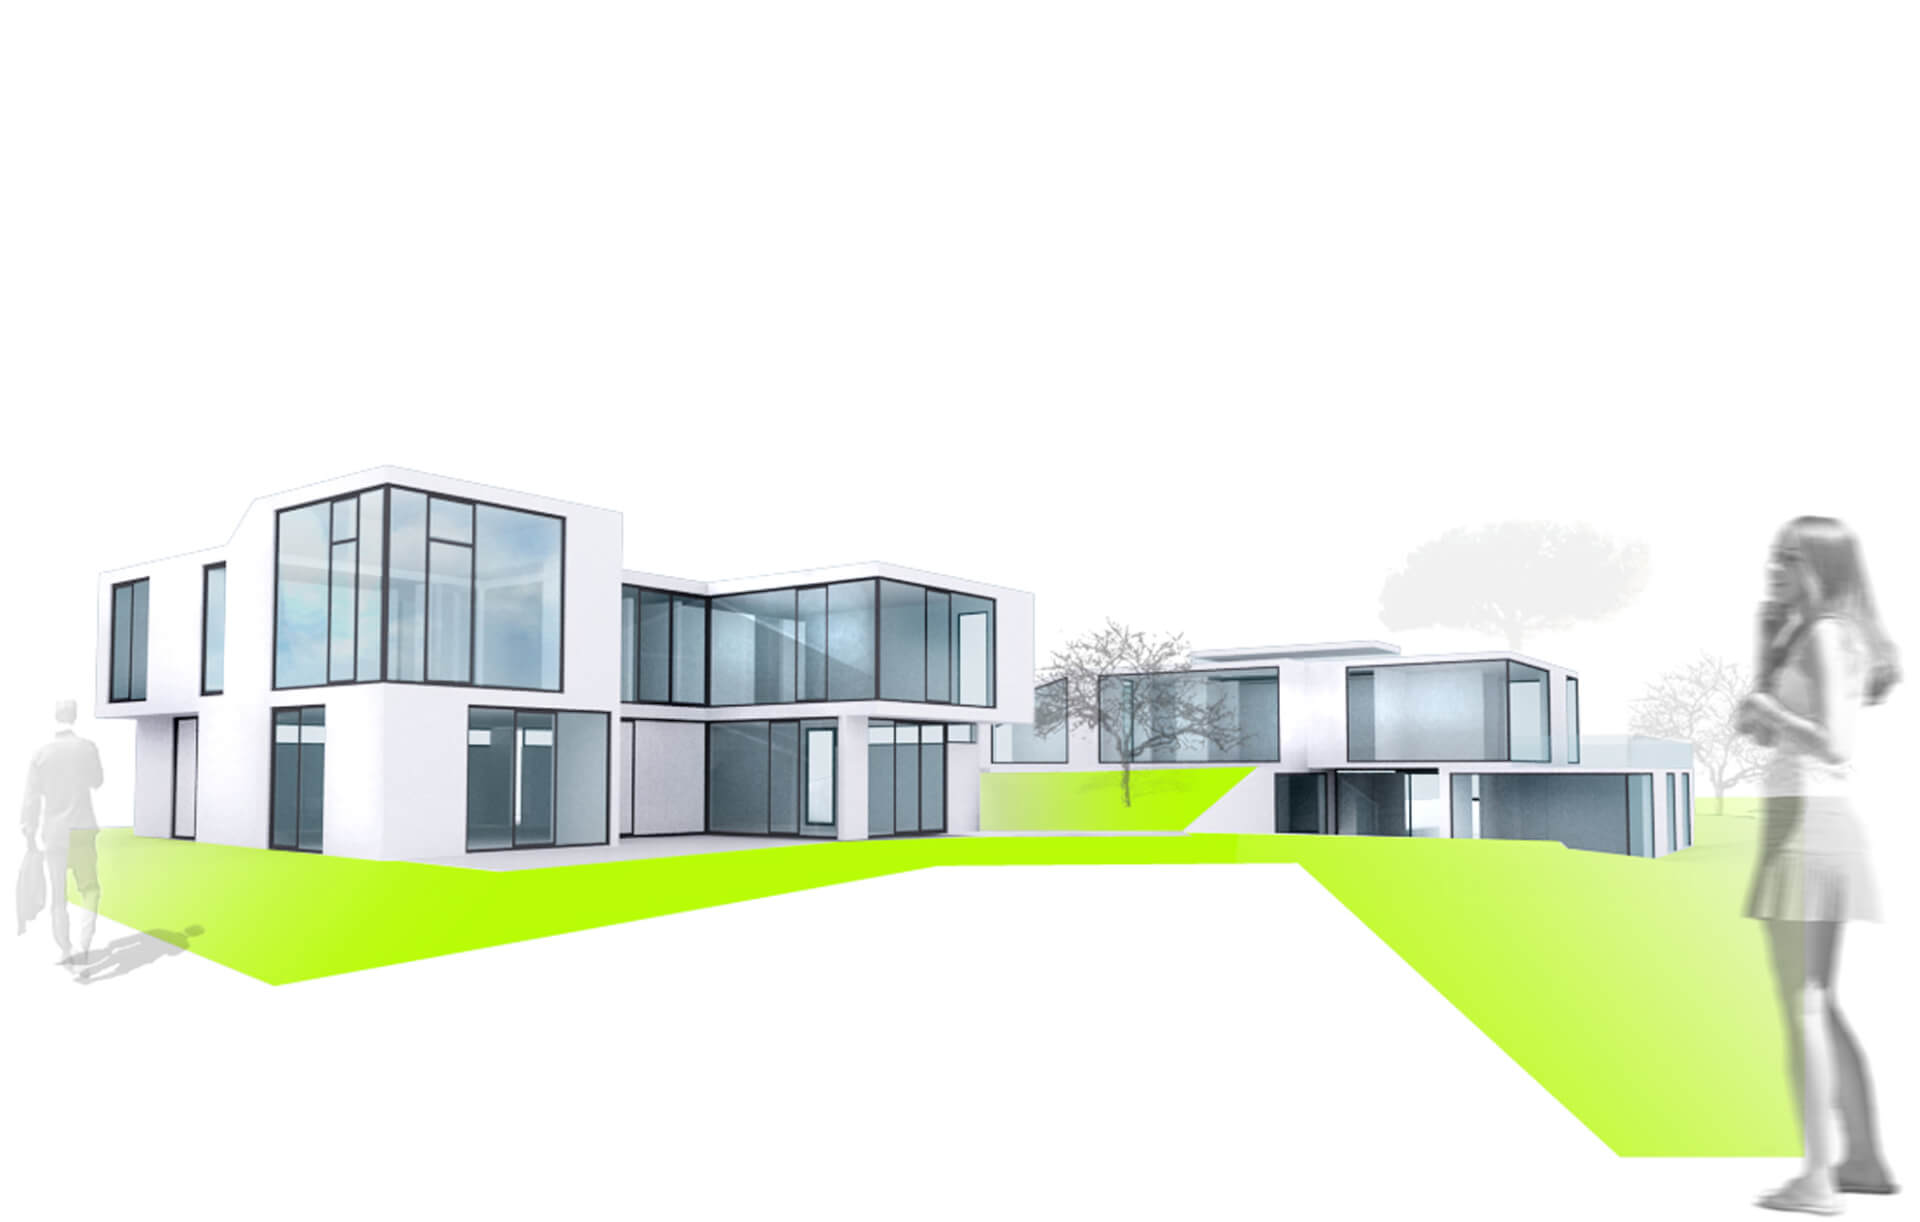 Appartmenthouse rendering white on white